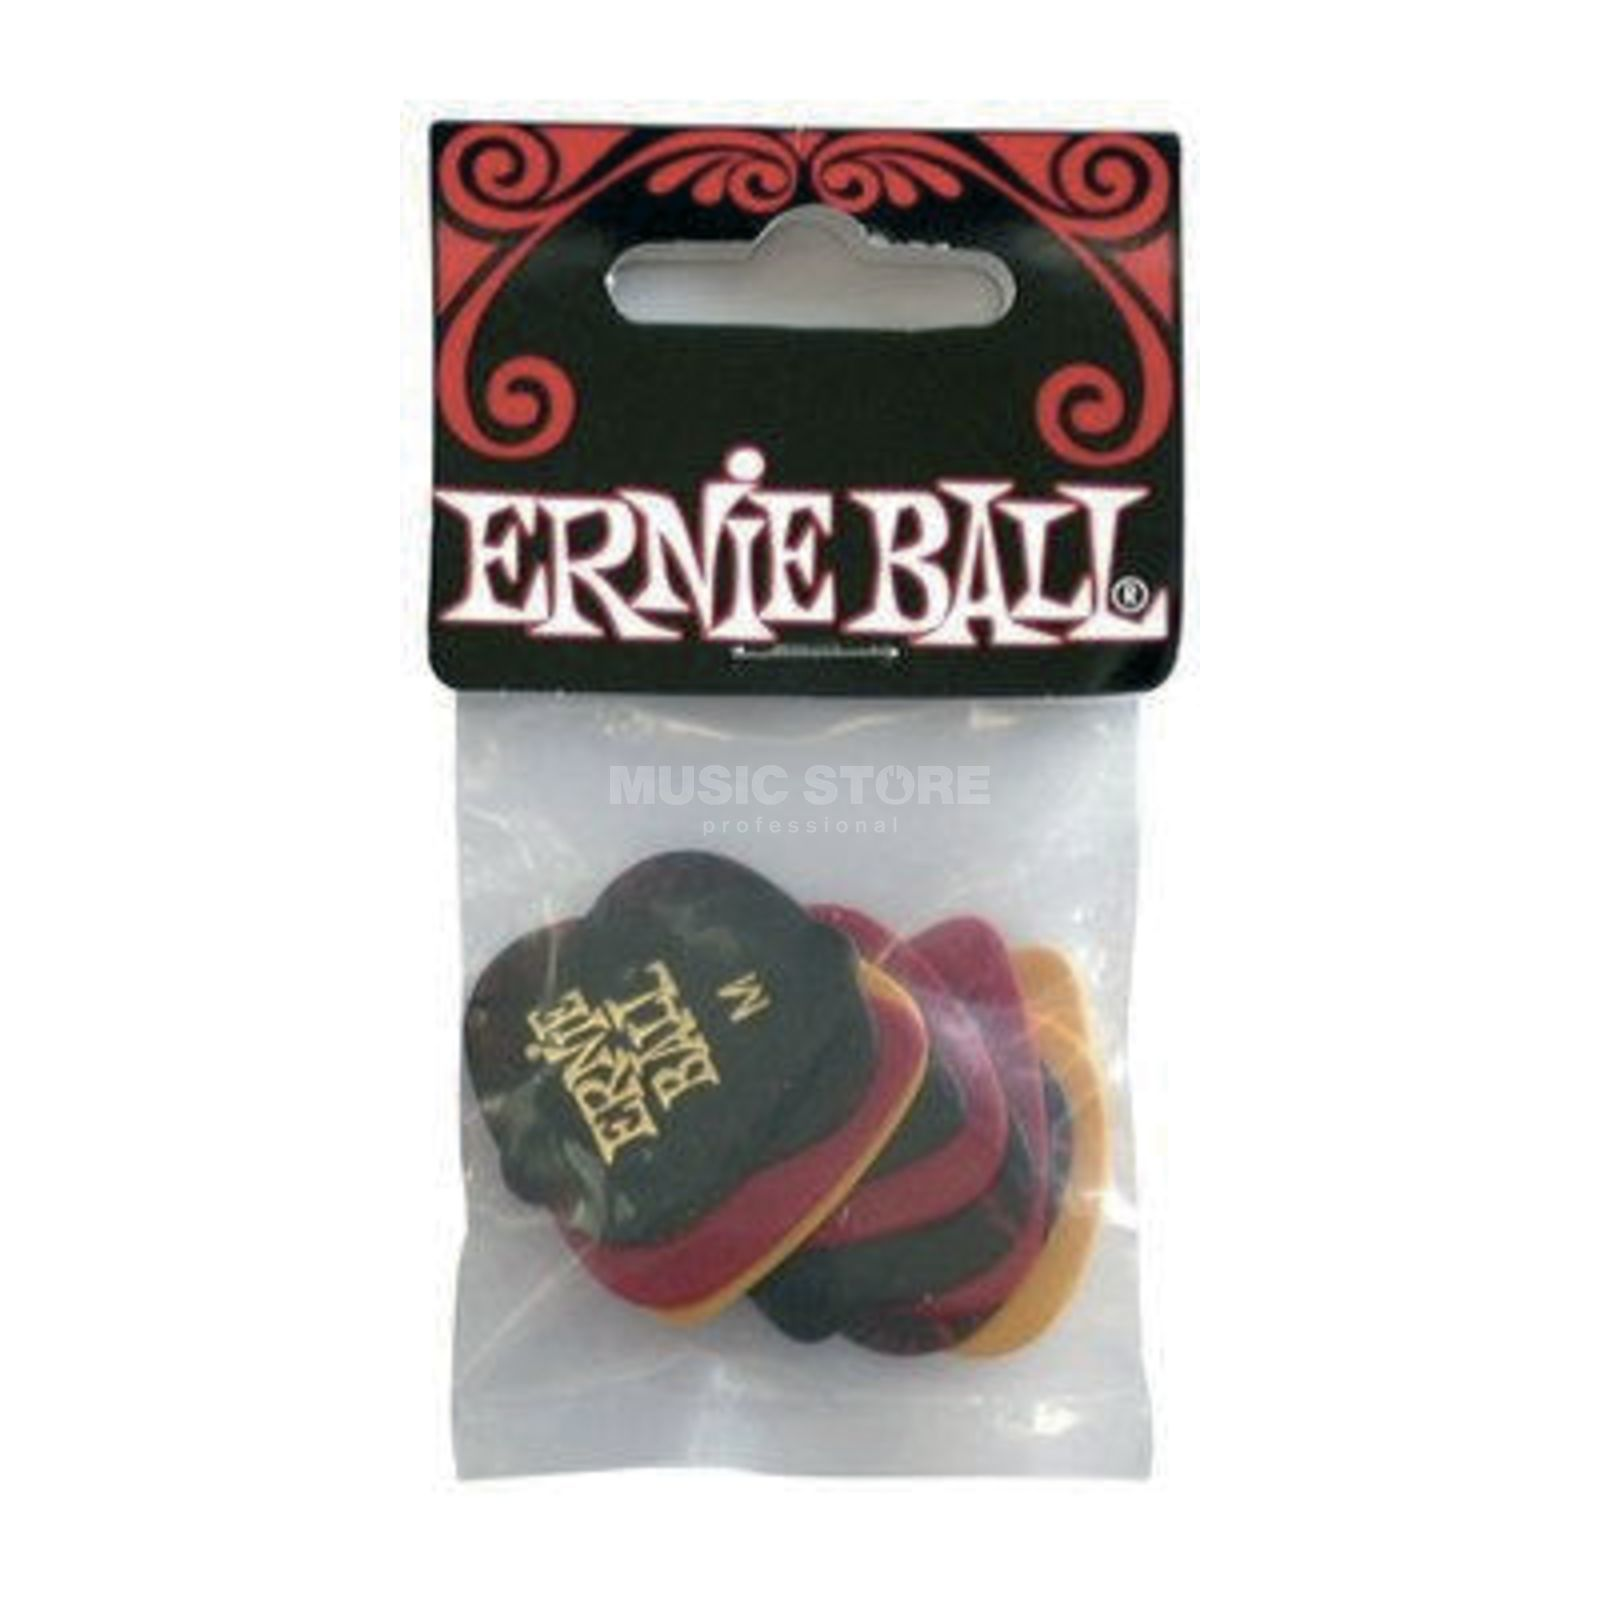 Ernie Ball Celluloid Picks 0,72 mm Box of 12 Produktbillede